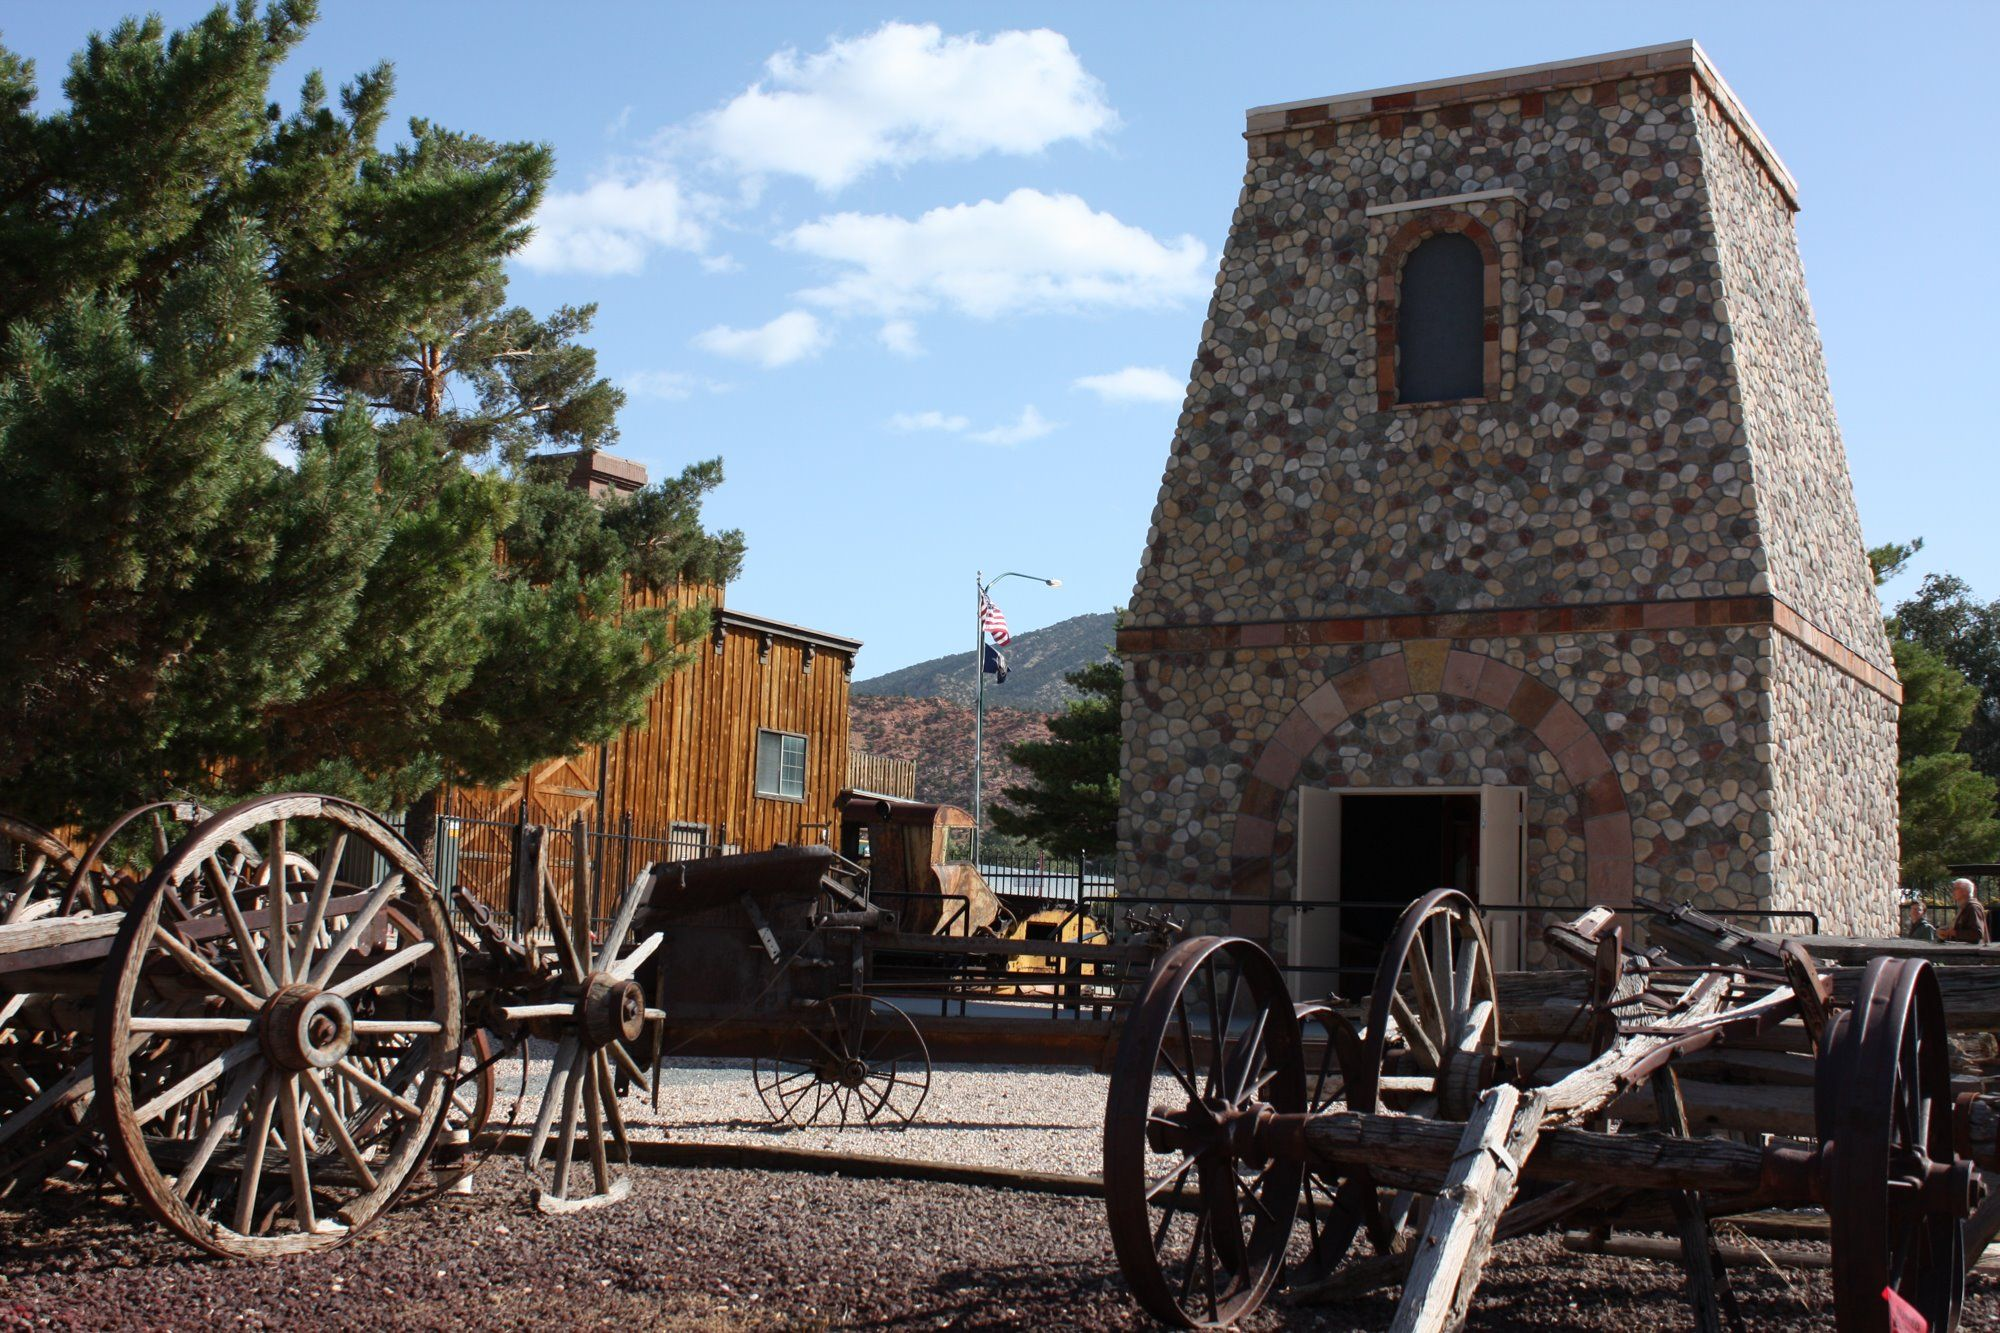 A confluence of pioneer and native american heritage